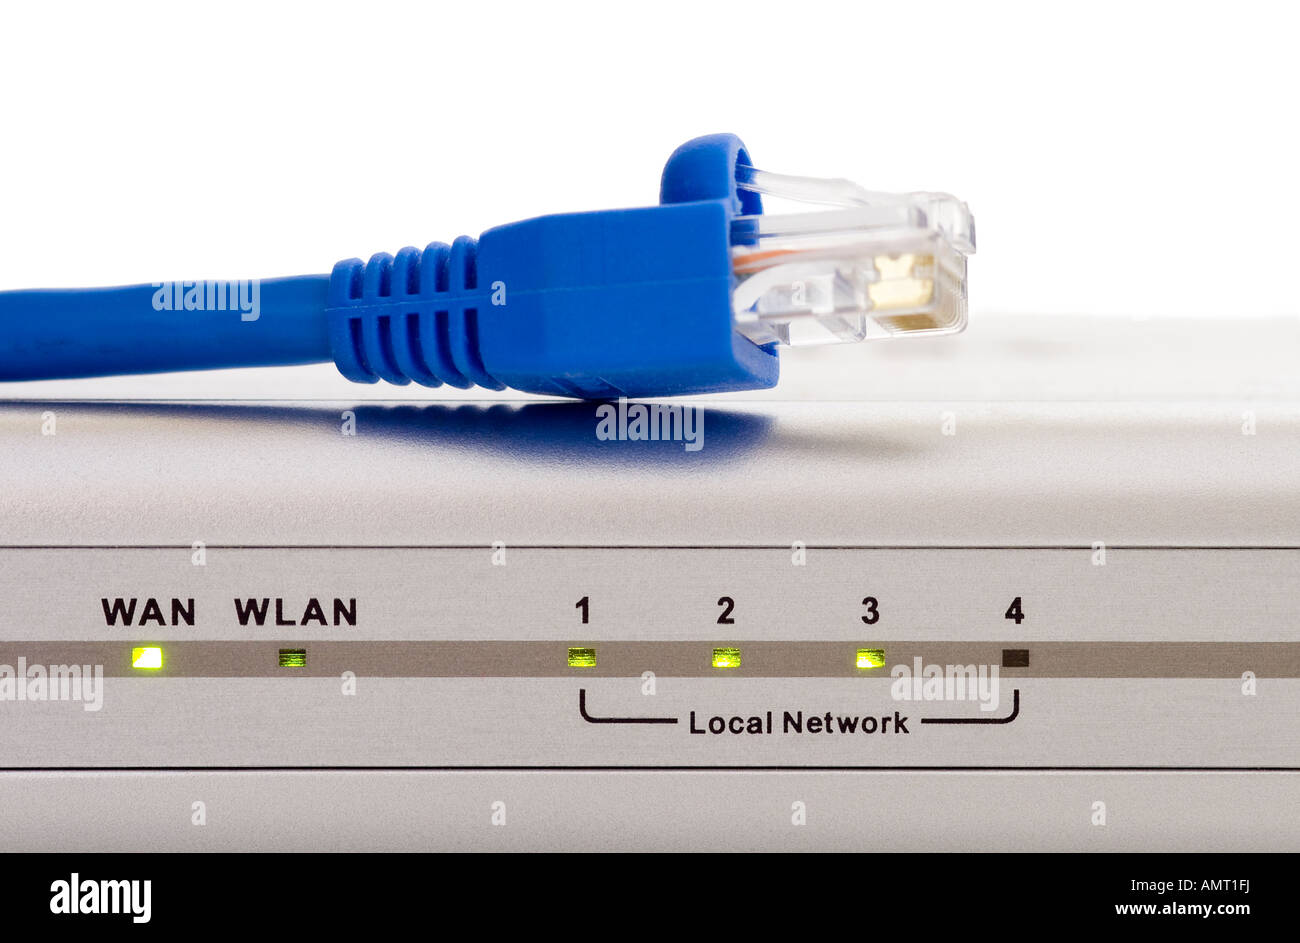 Computer network router status lights with blue Cat 5 cable and